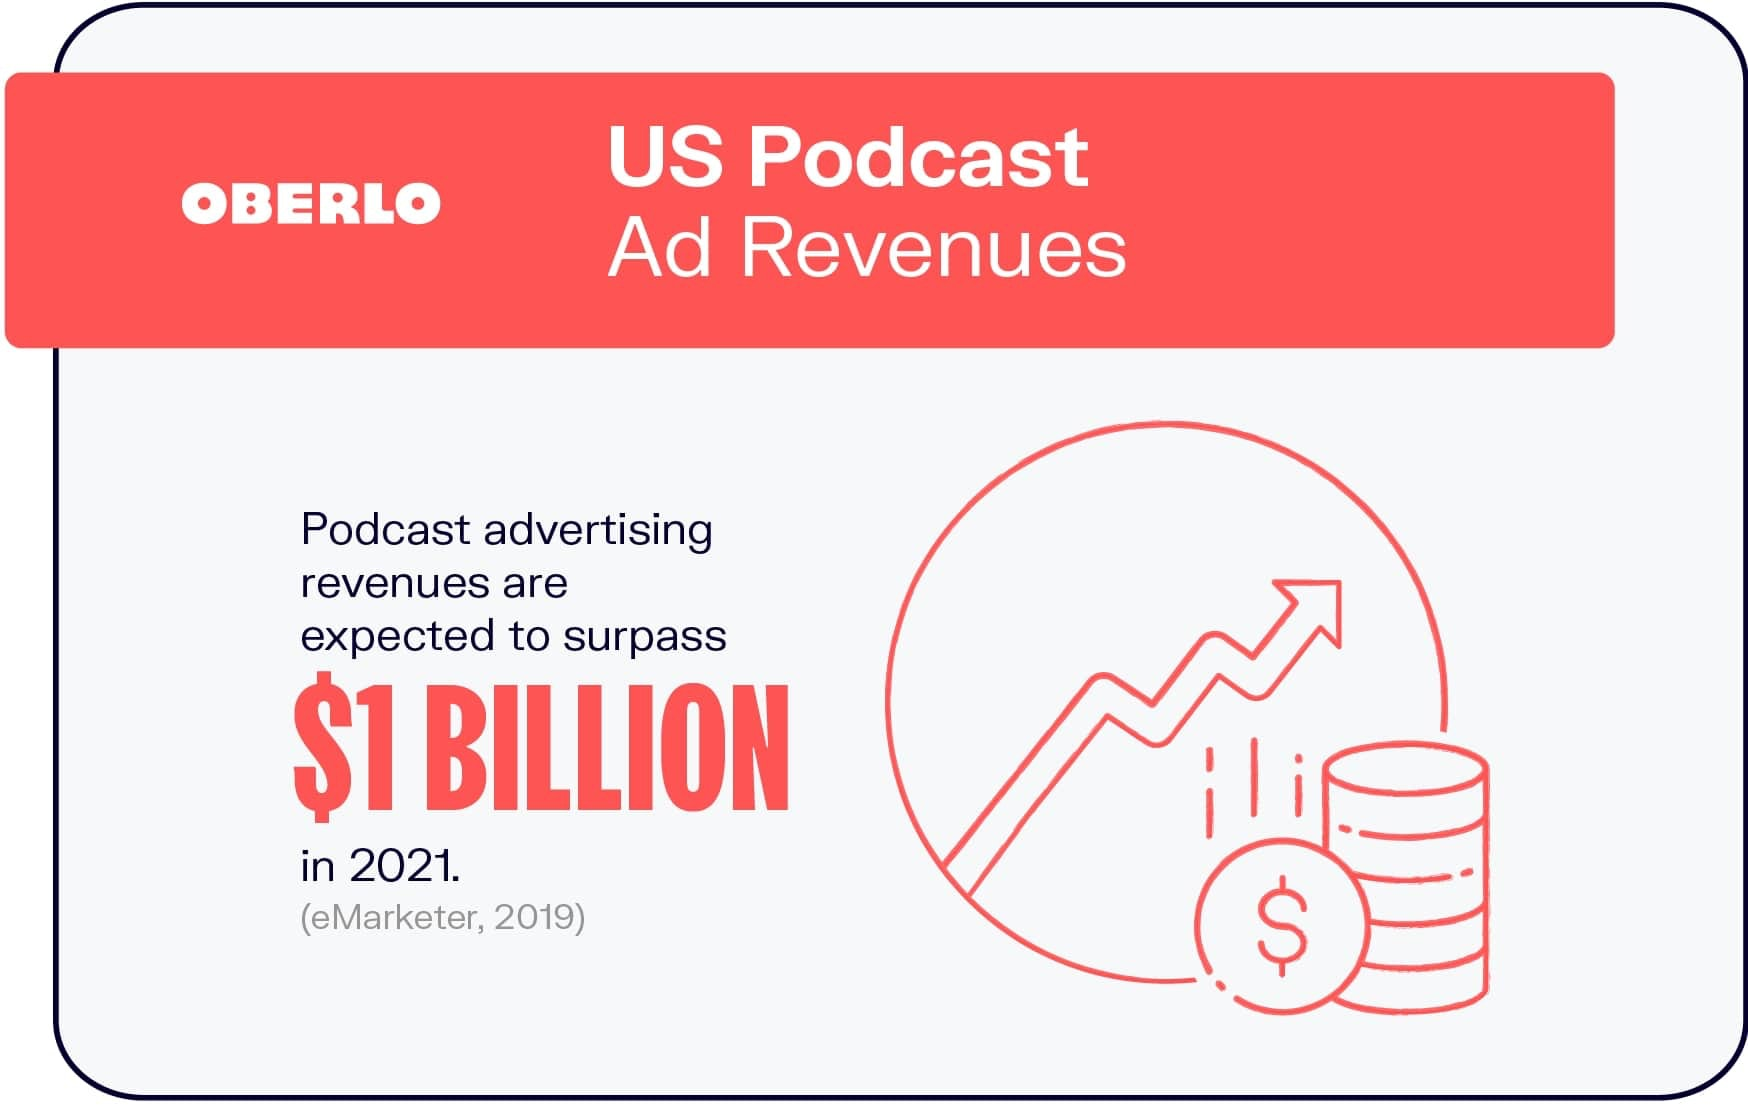 US Podcast Ad Revenues